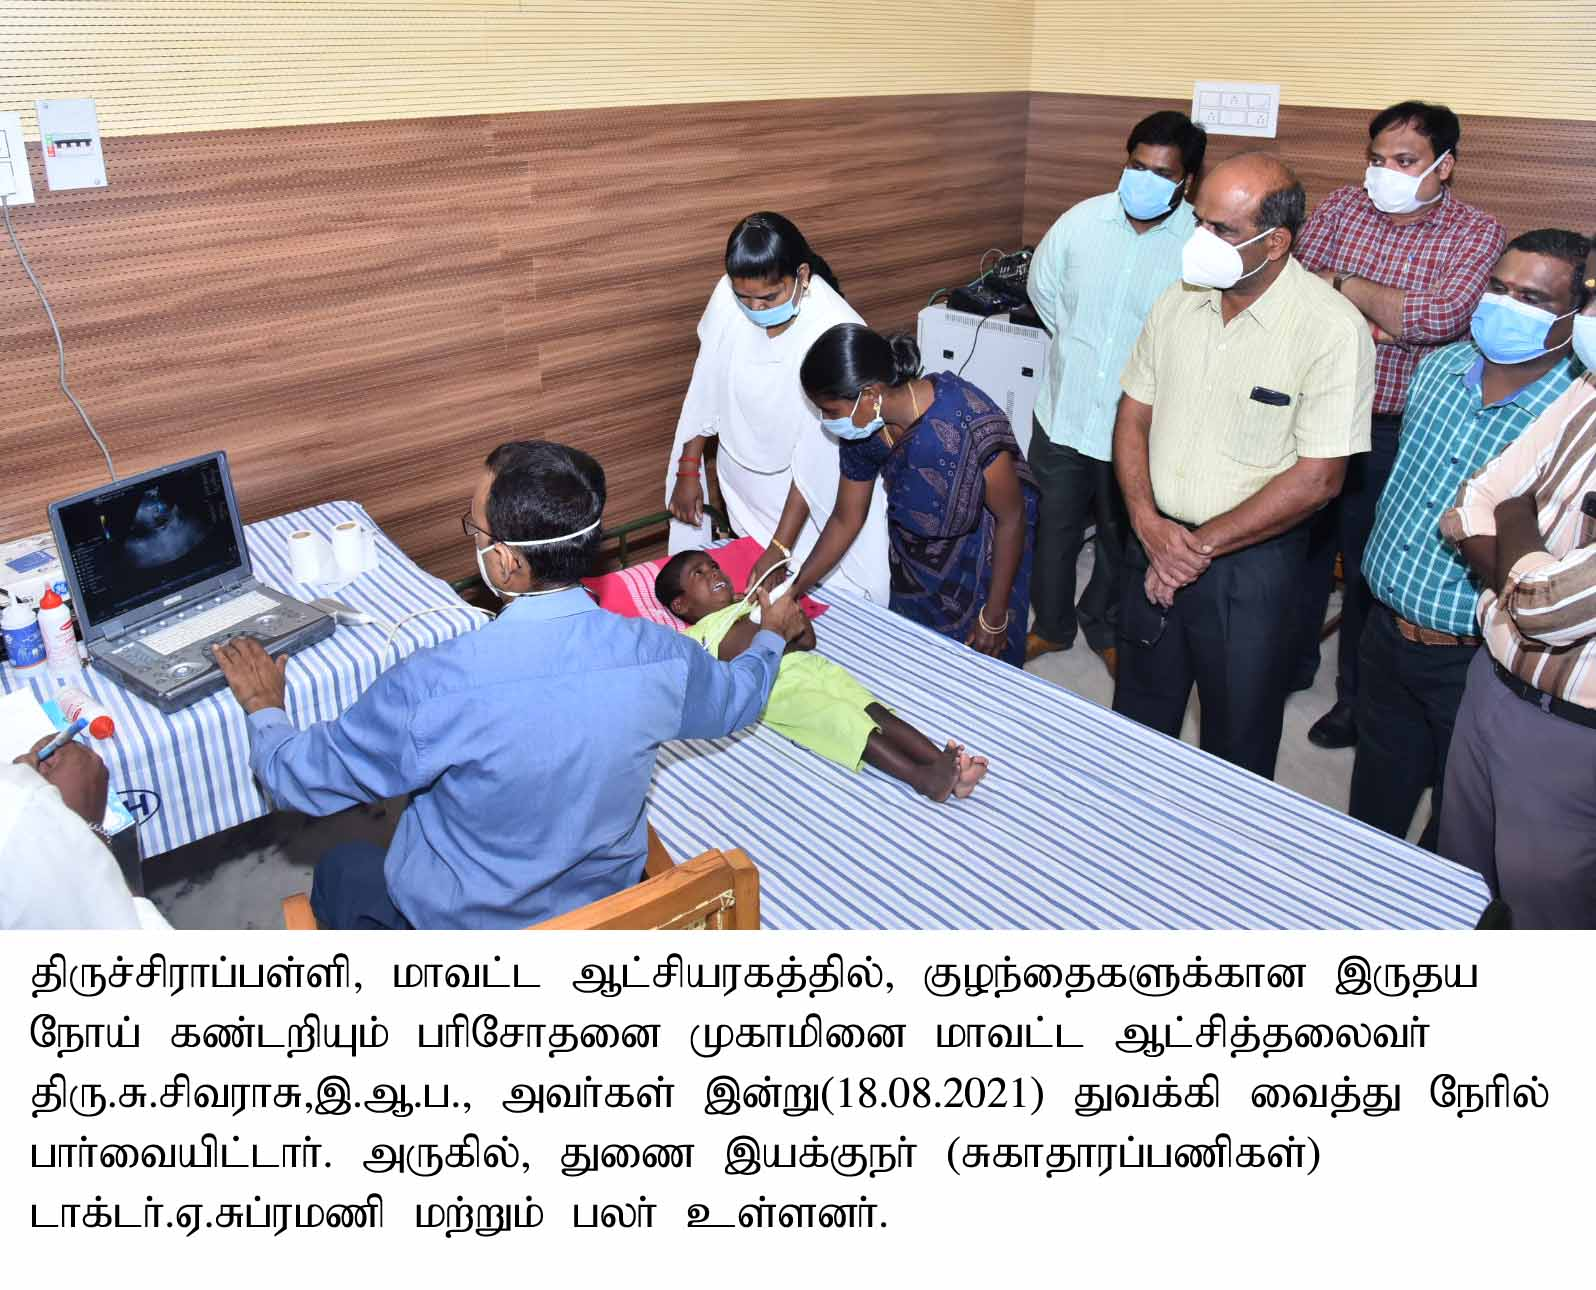 District Collector started Special cardiovascular diagnostics camp for children on 18-08-2021